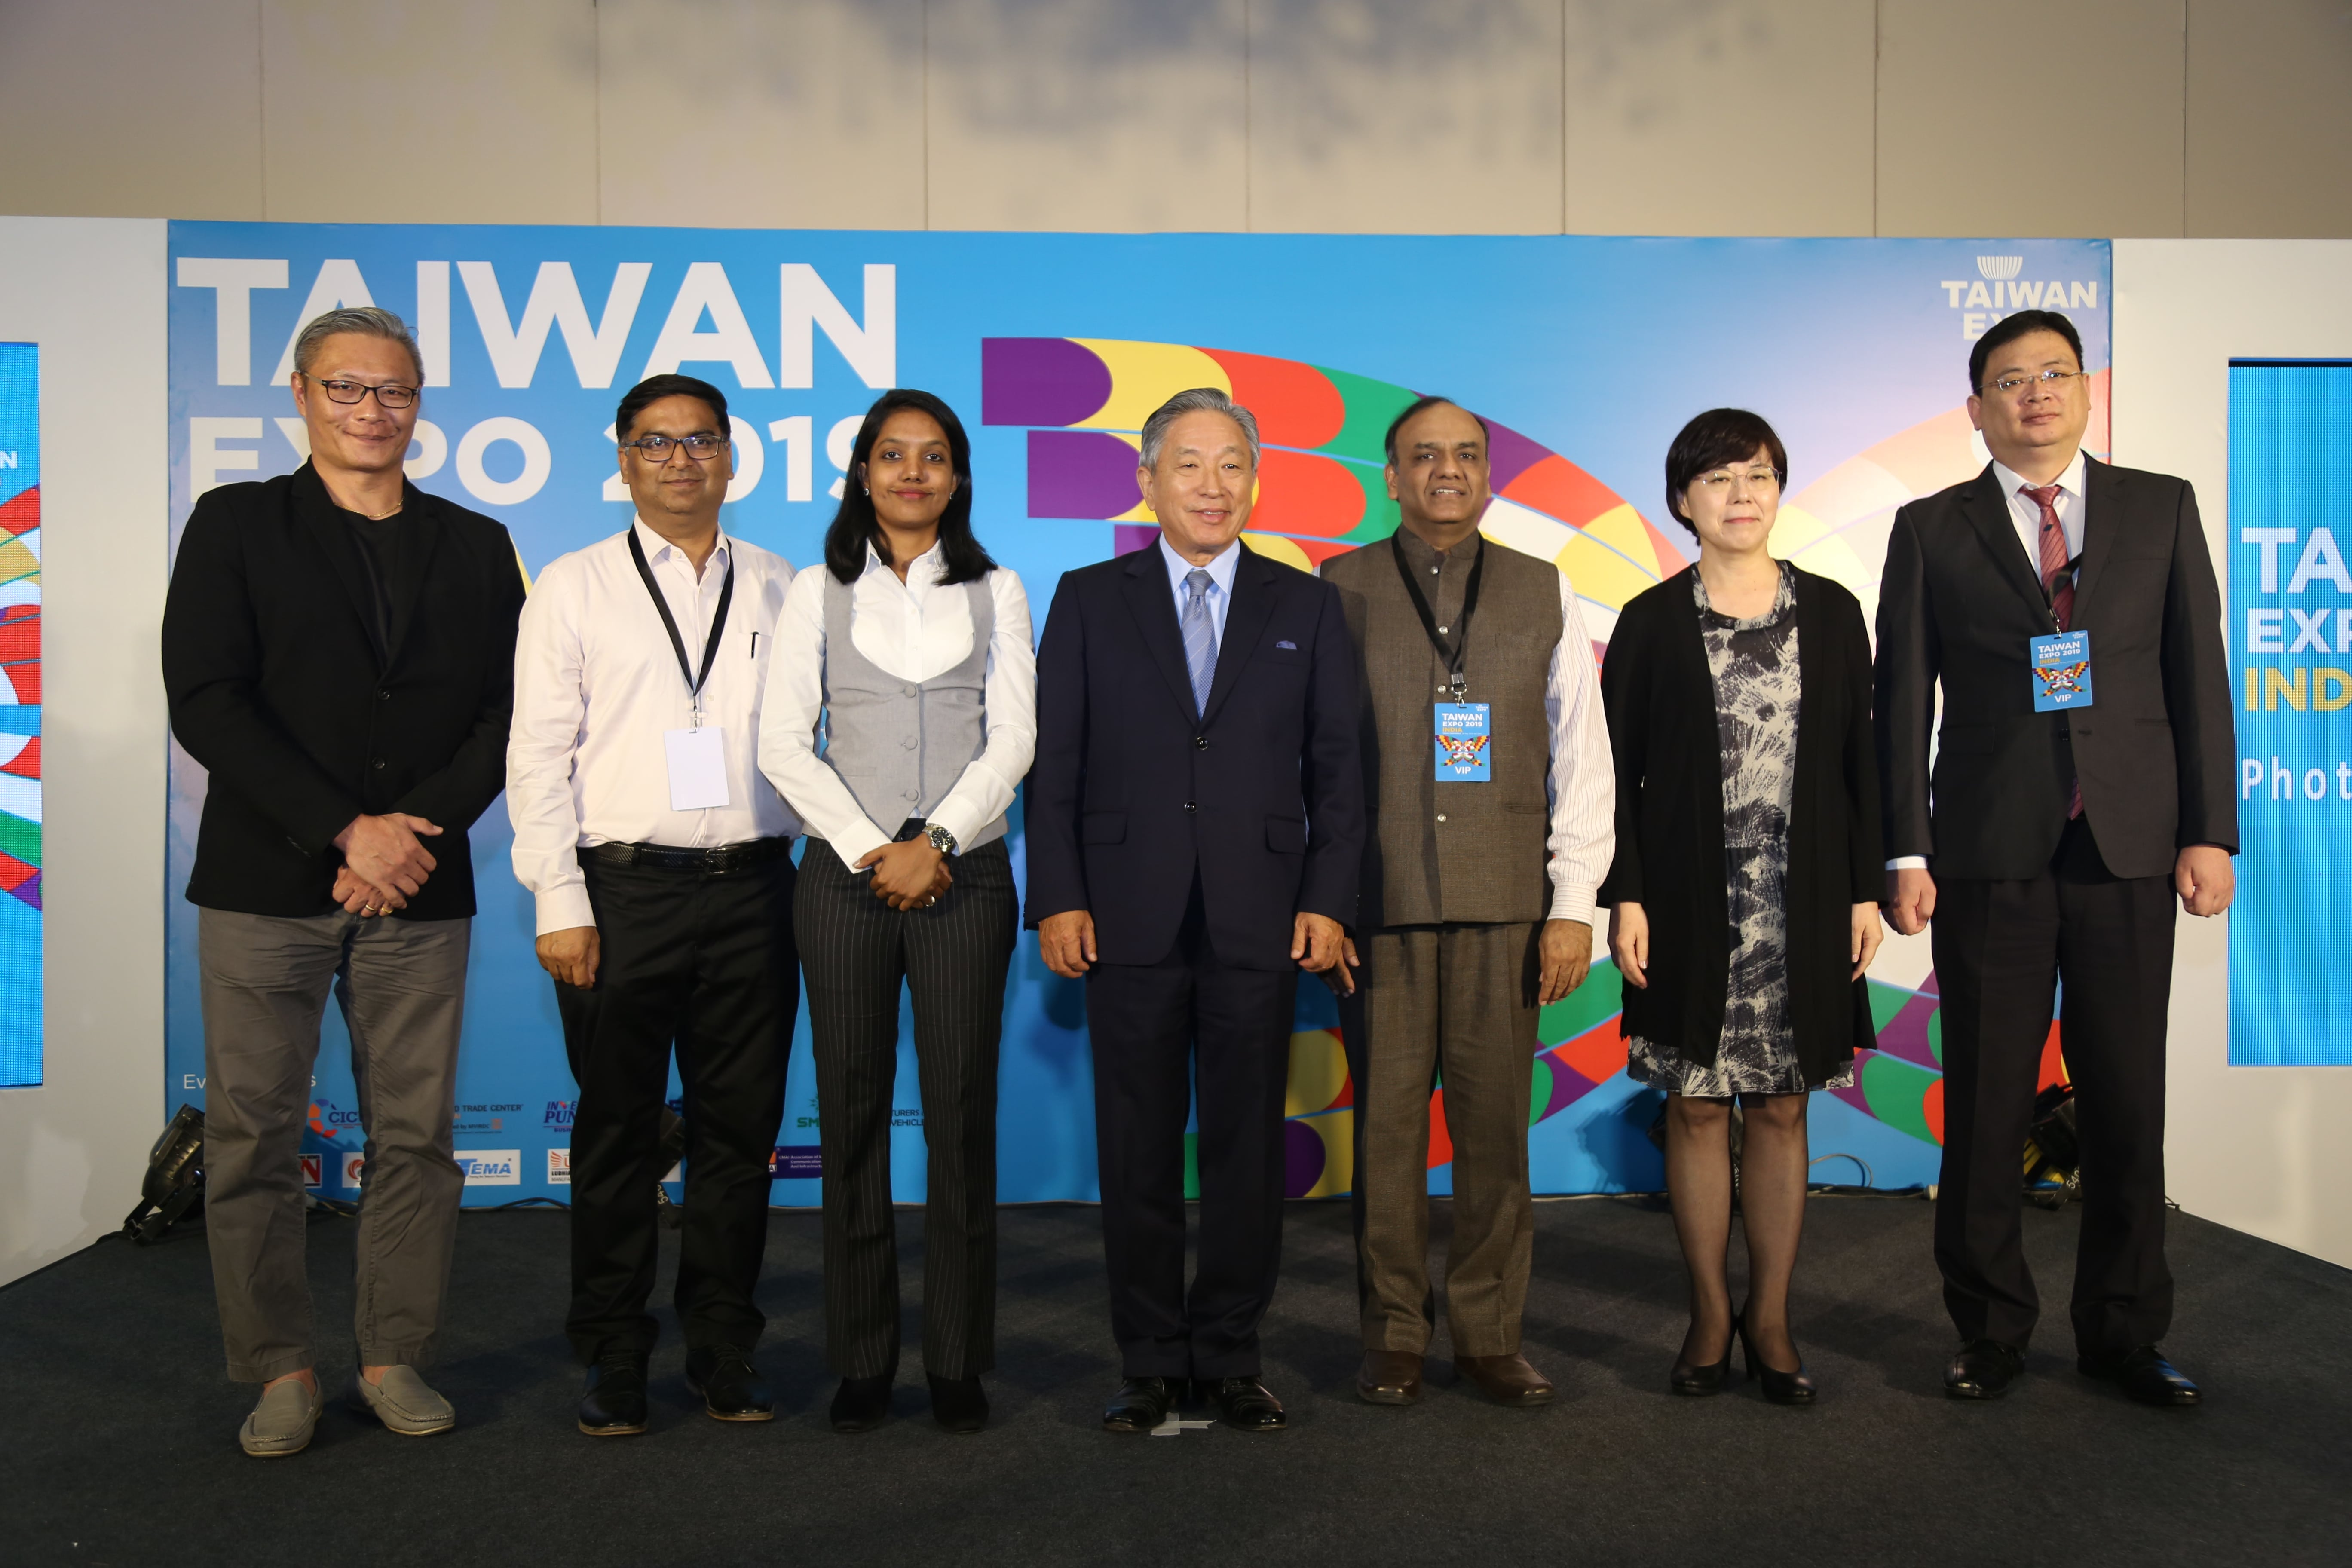 Taiwan Expo 2019 to Strengthen India-Taiwan Business Relations!